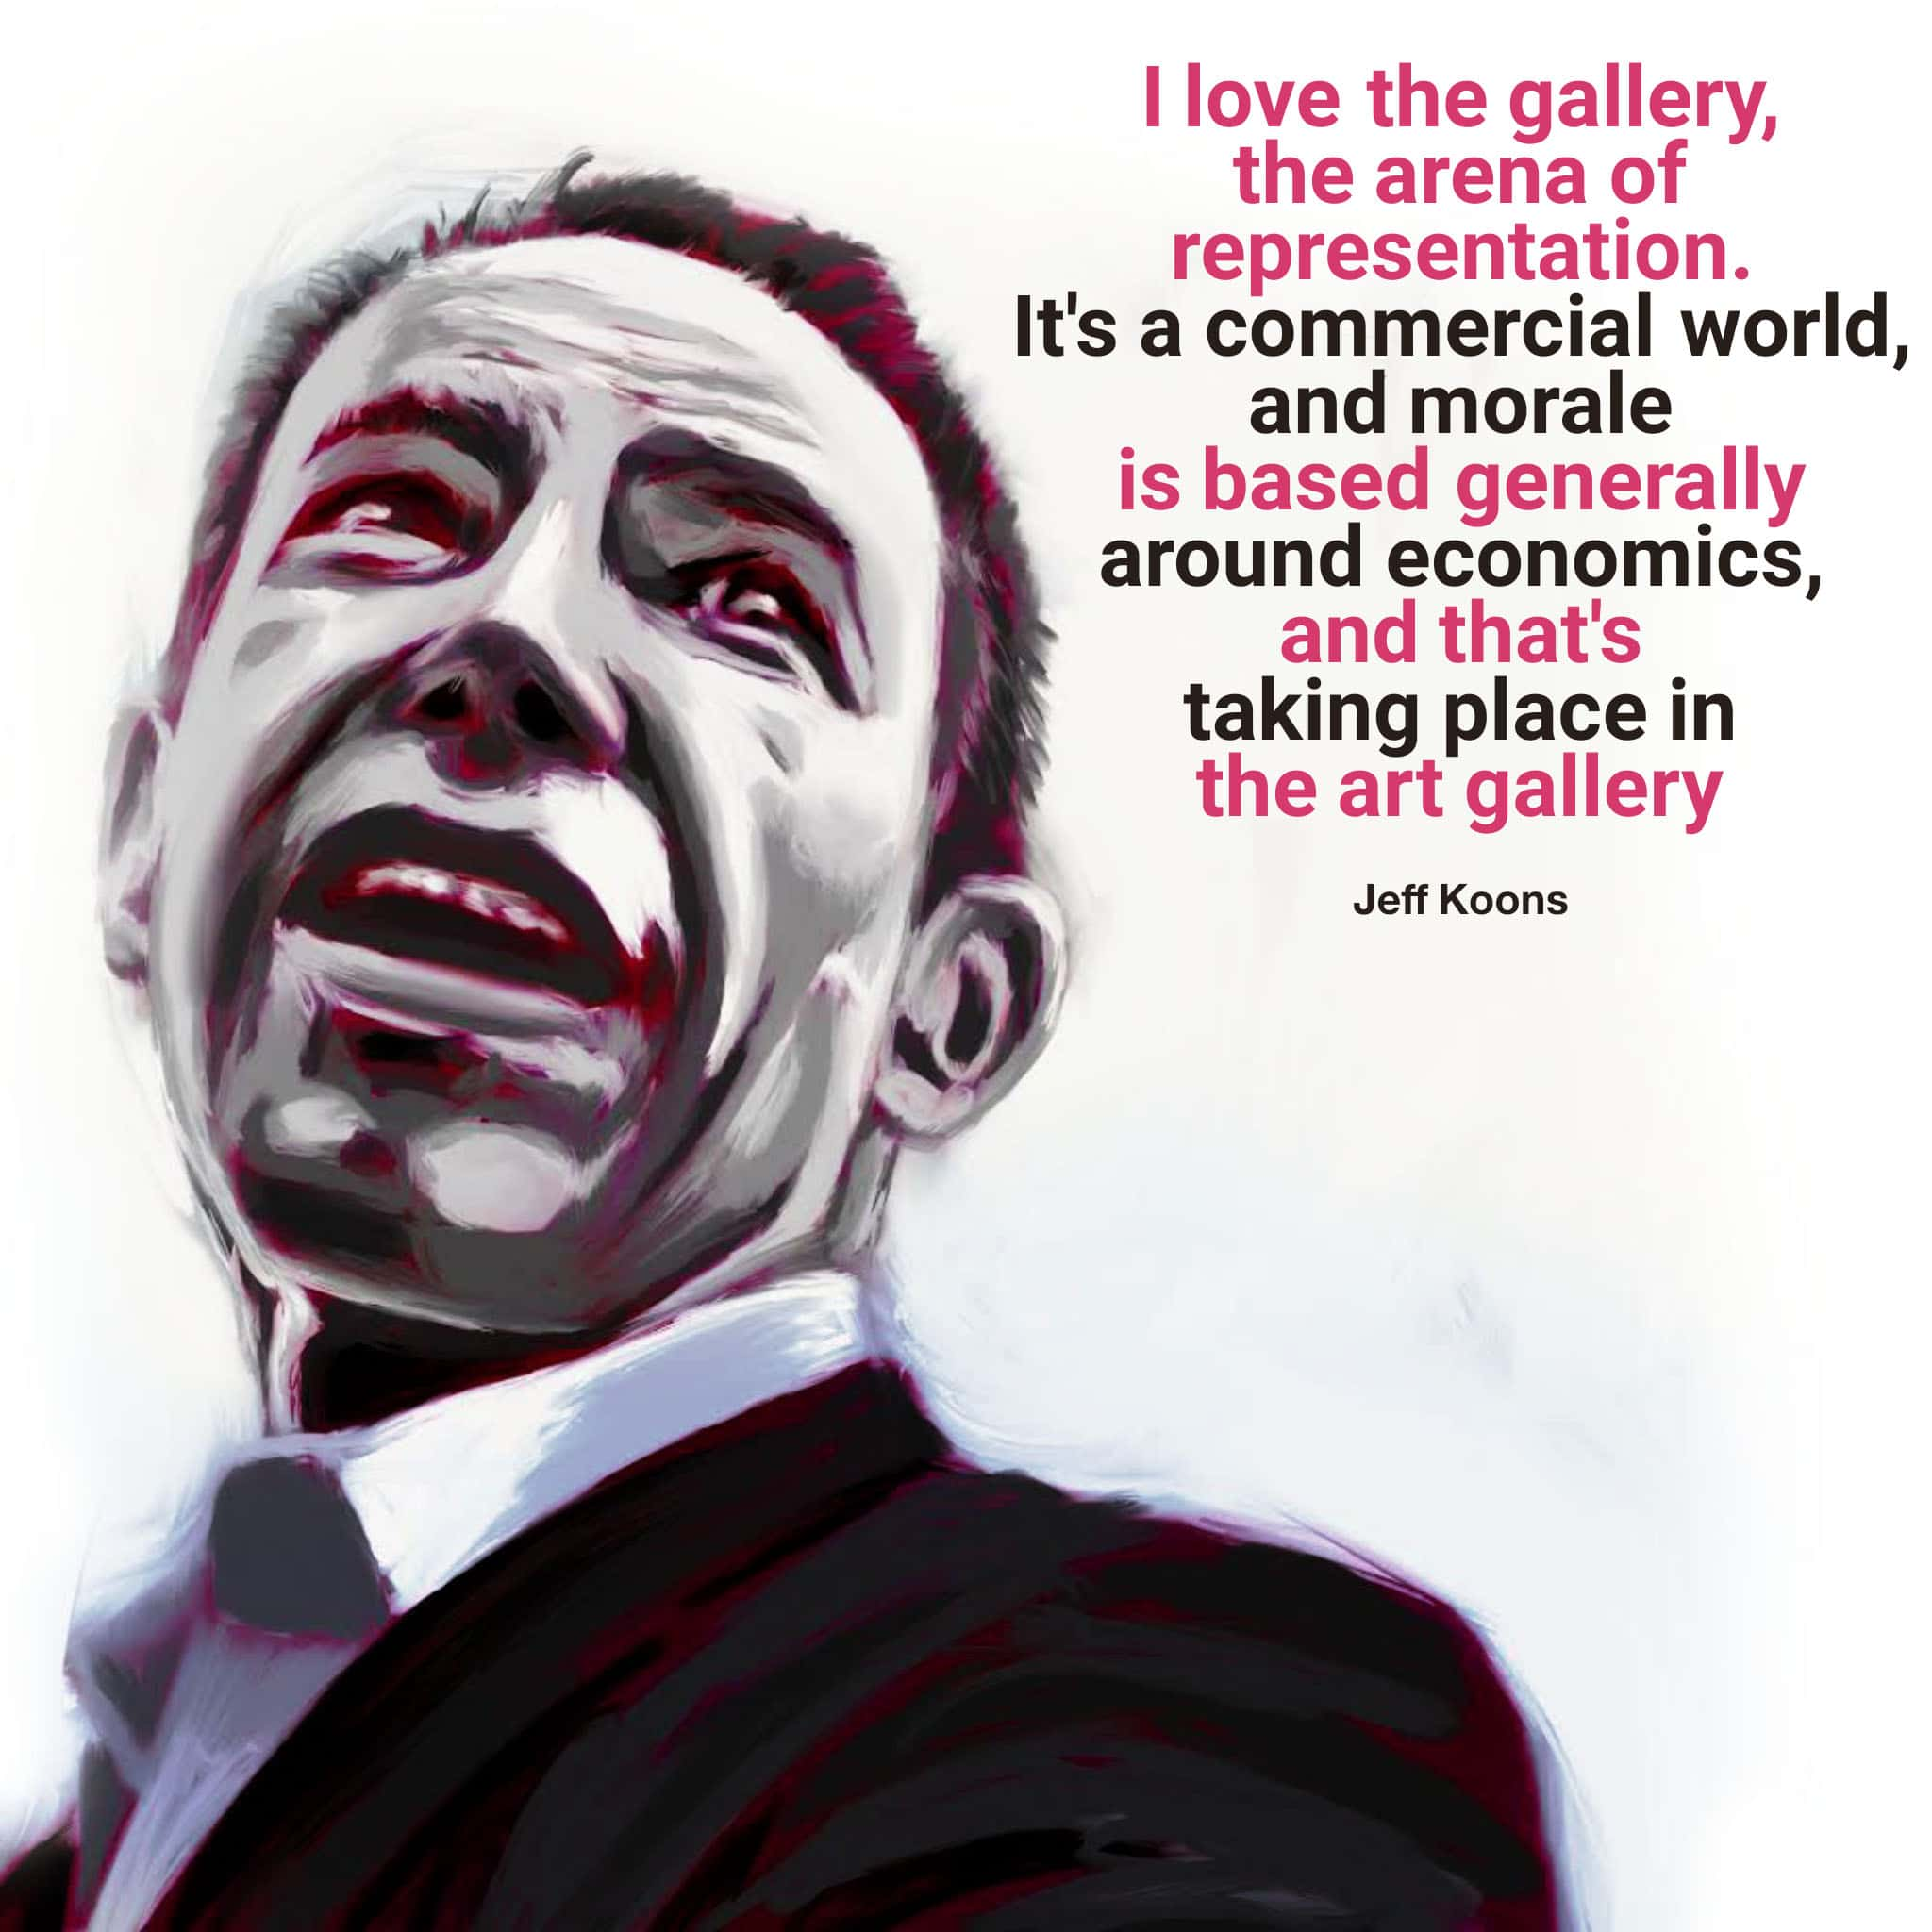 Art gallery quotes (16 Quotes) about the importance of the arts